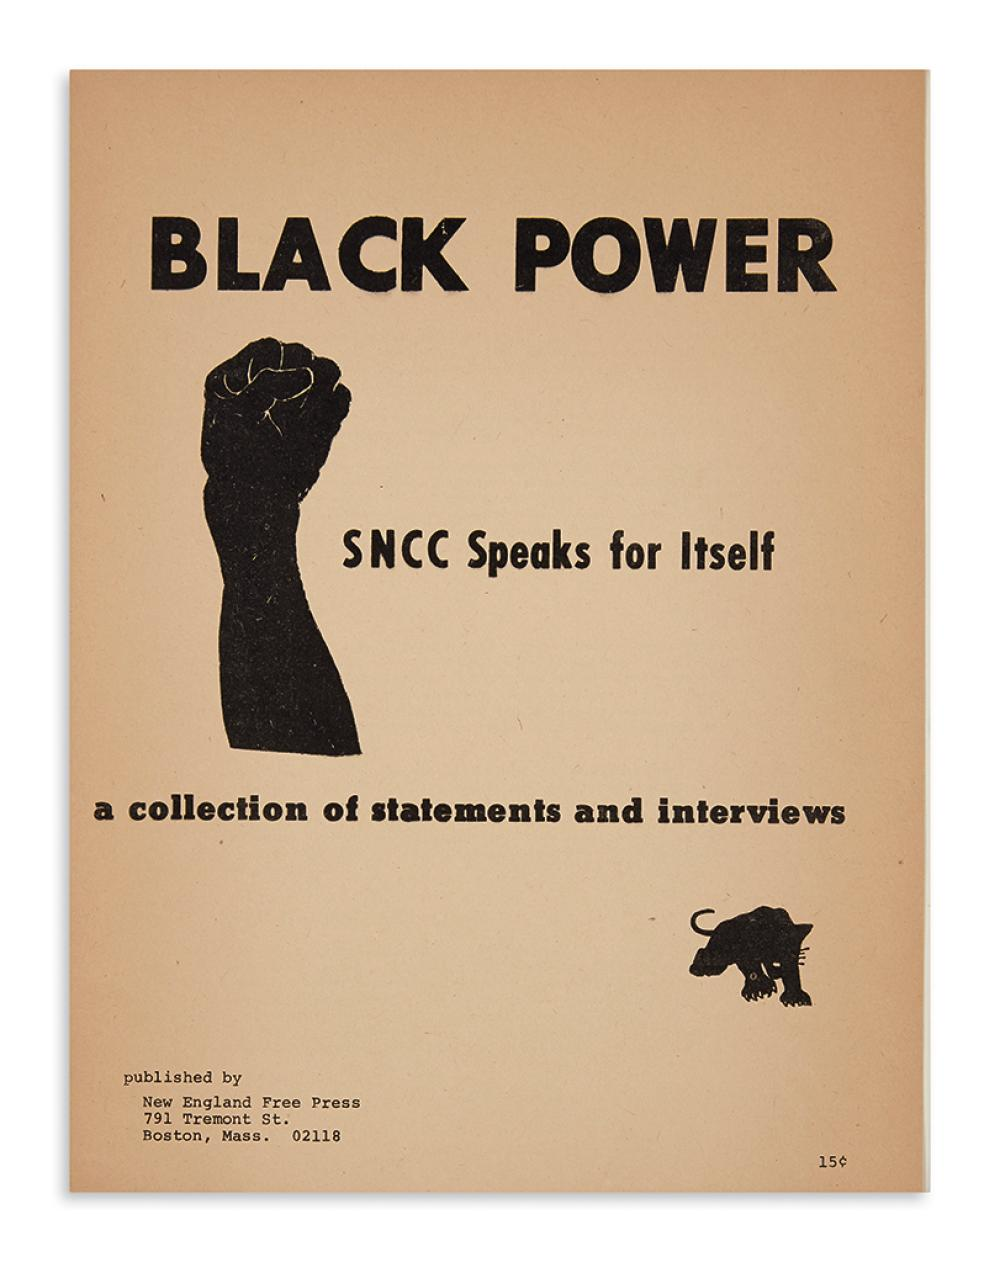 (BLACK PANTHERS.) Black Power: SNCC Speaks for Itself, a Collection of Statements and Interviews.